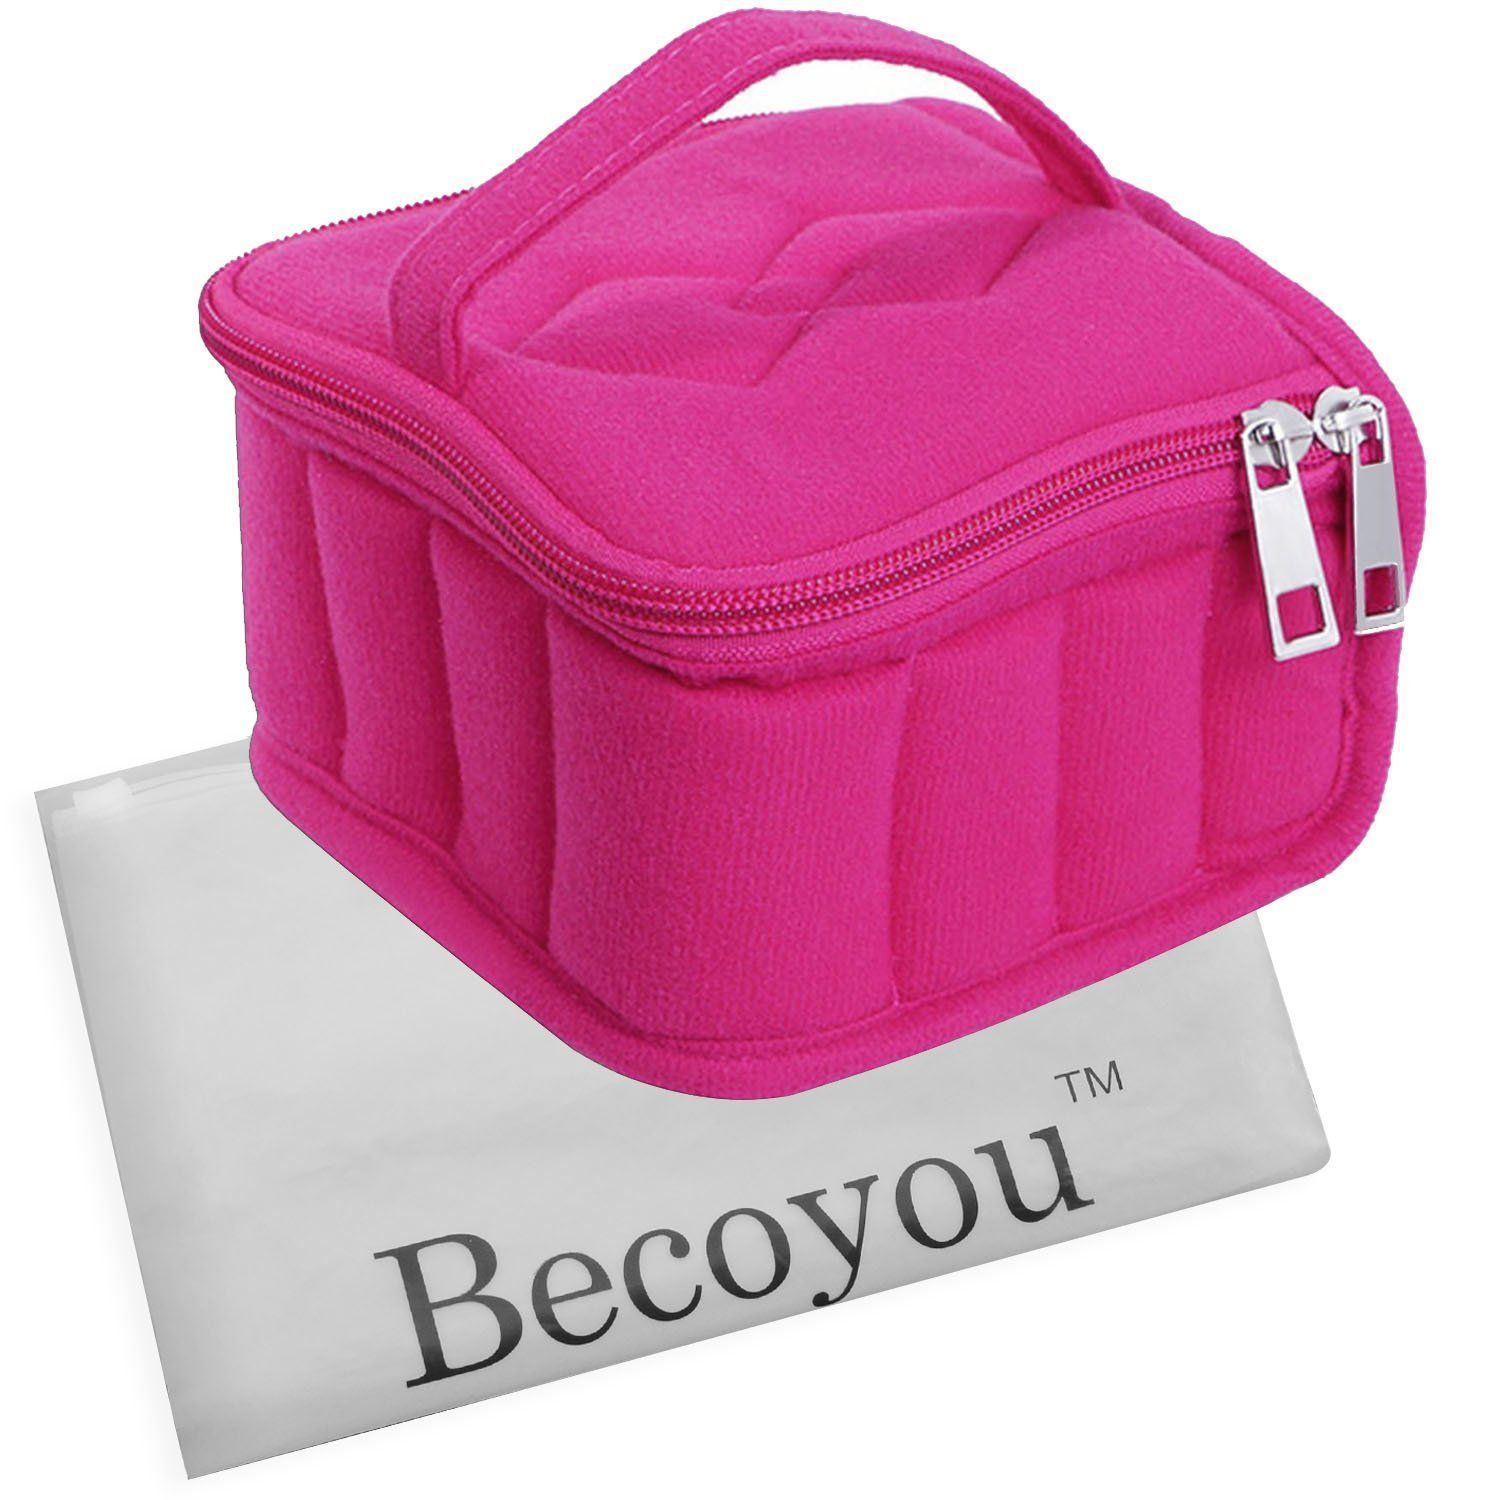 710ad9963246 Essential Oil Carrying Case, Becoyou Essential Oils Display ...